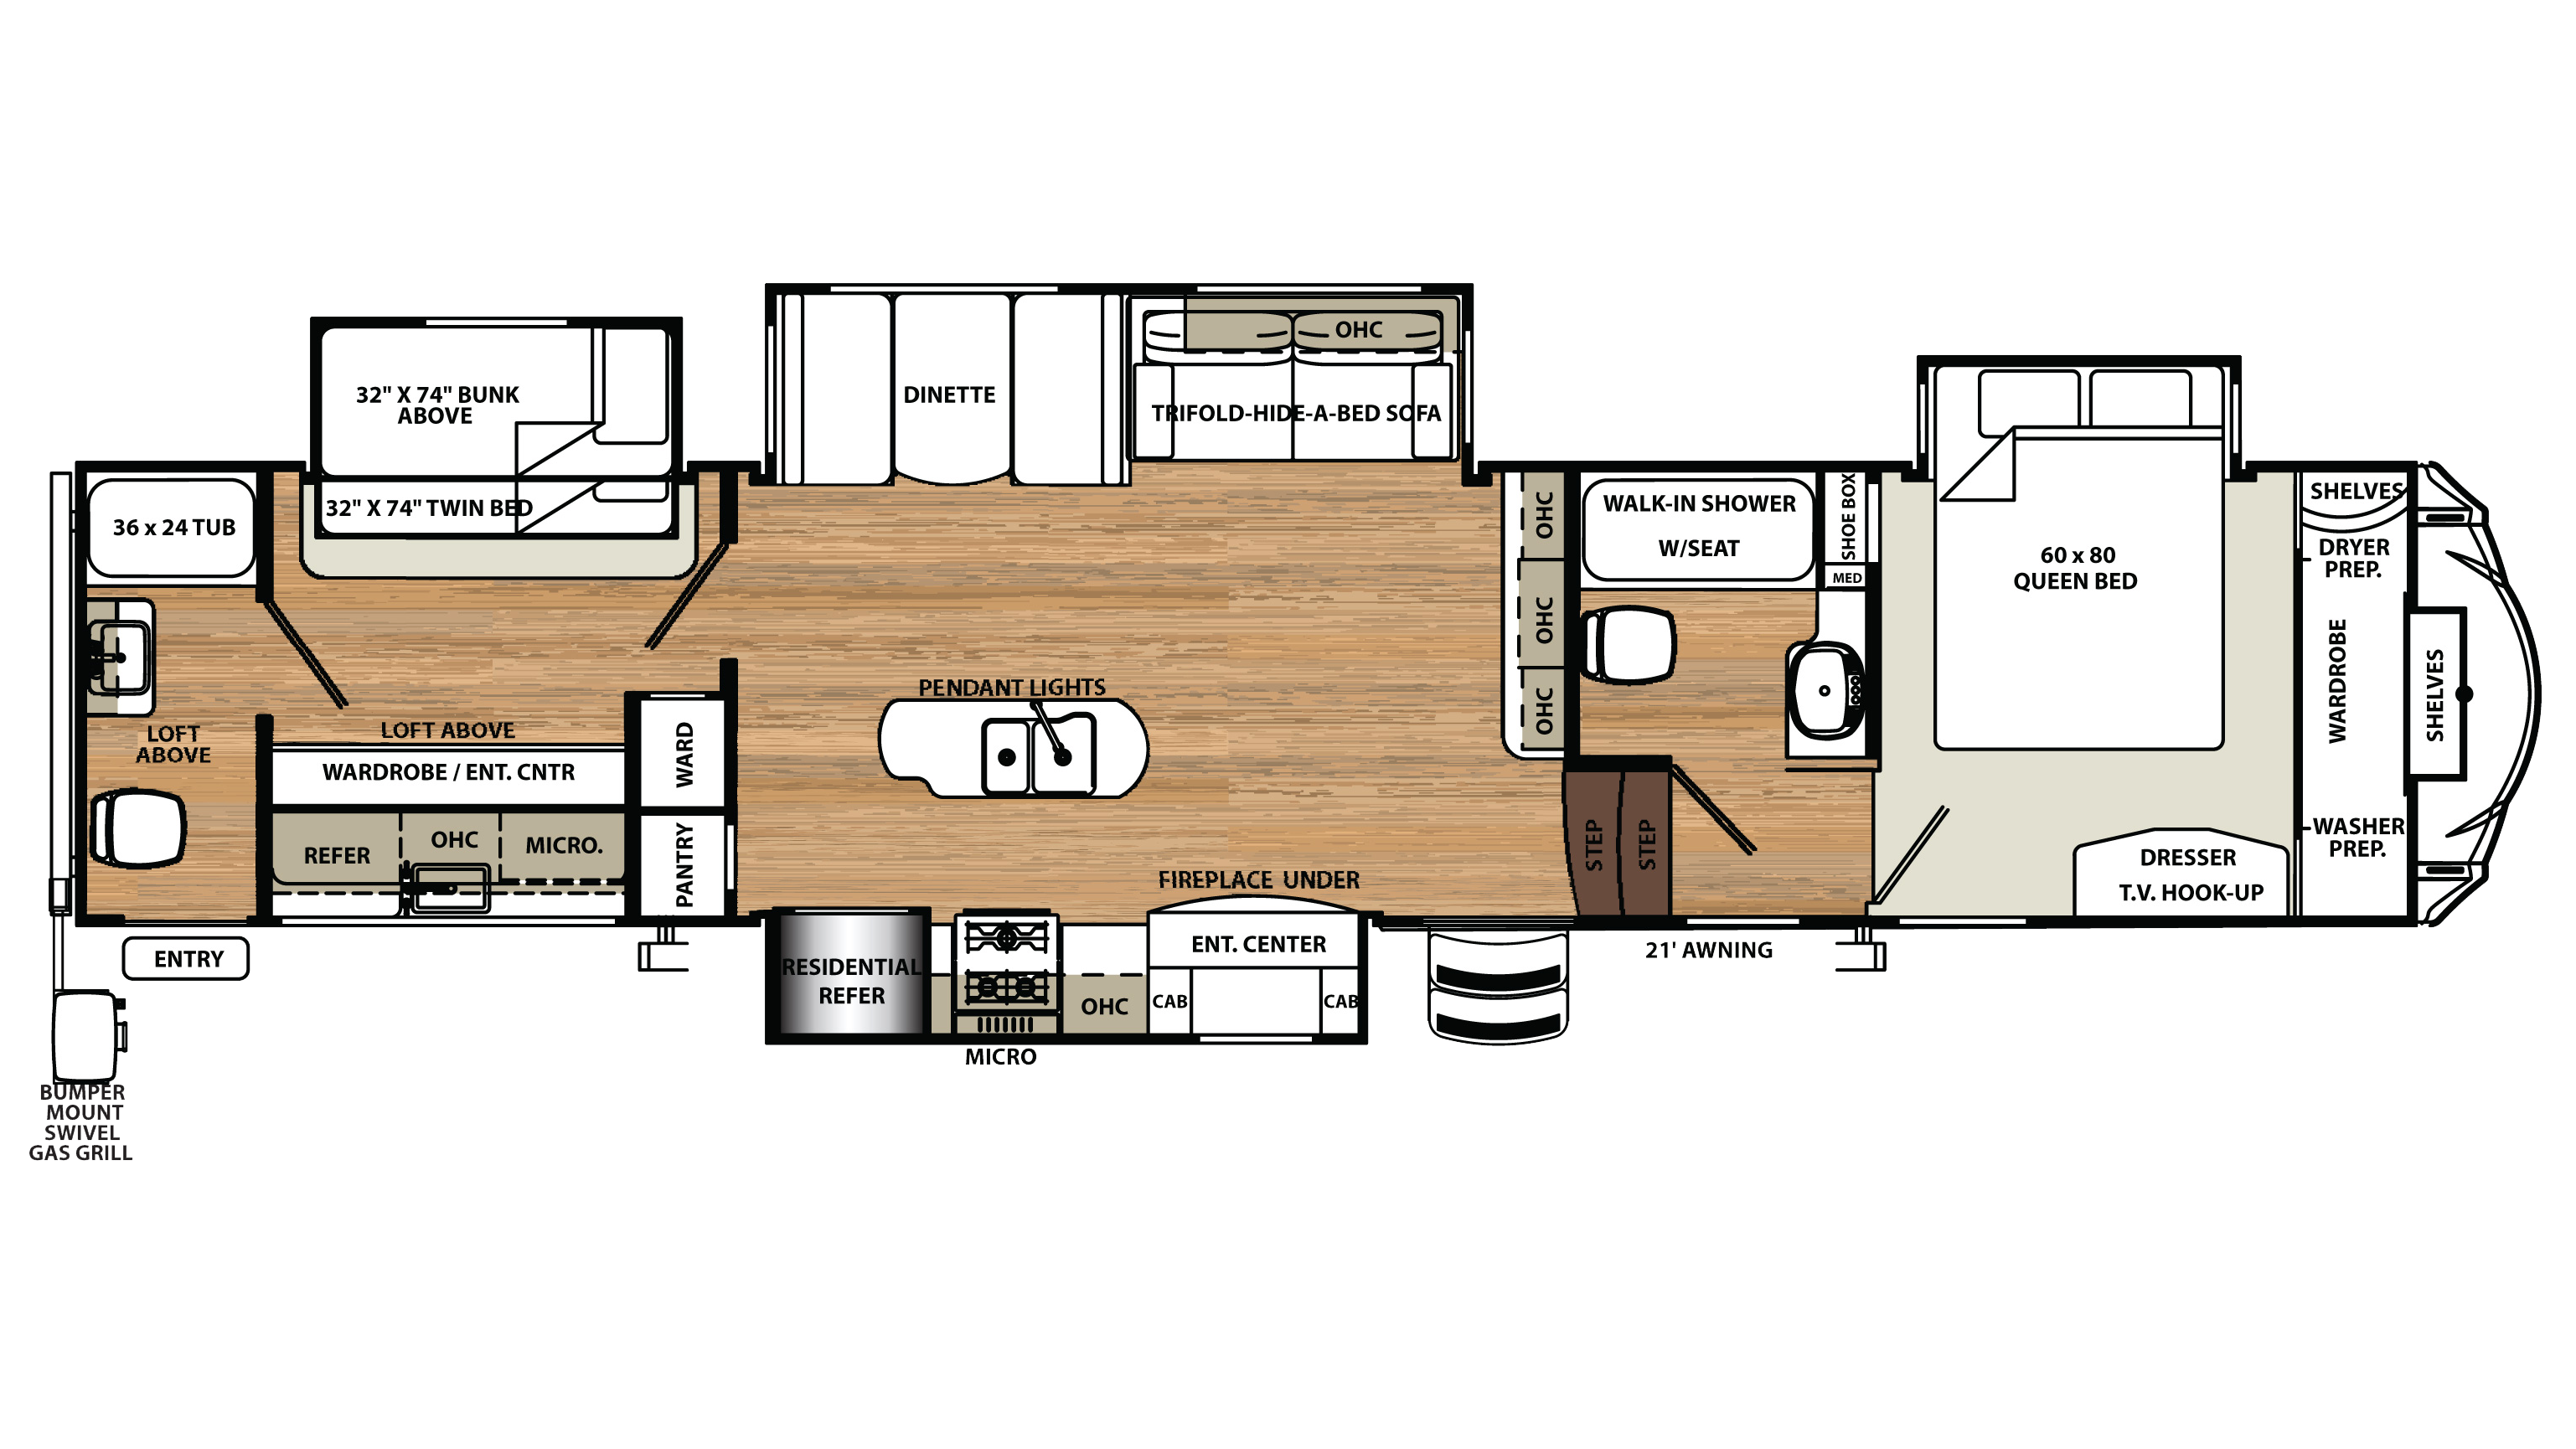 Fleetwood Prowler 5th Wheel Floor Plans Salem Forest River 2005 Travel Trailer Wiring Diagram 2005